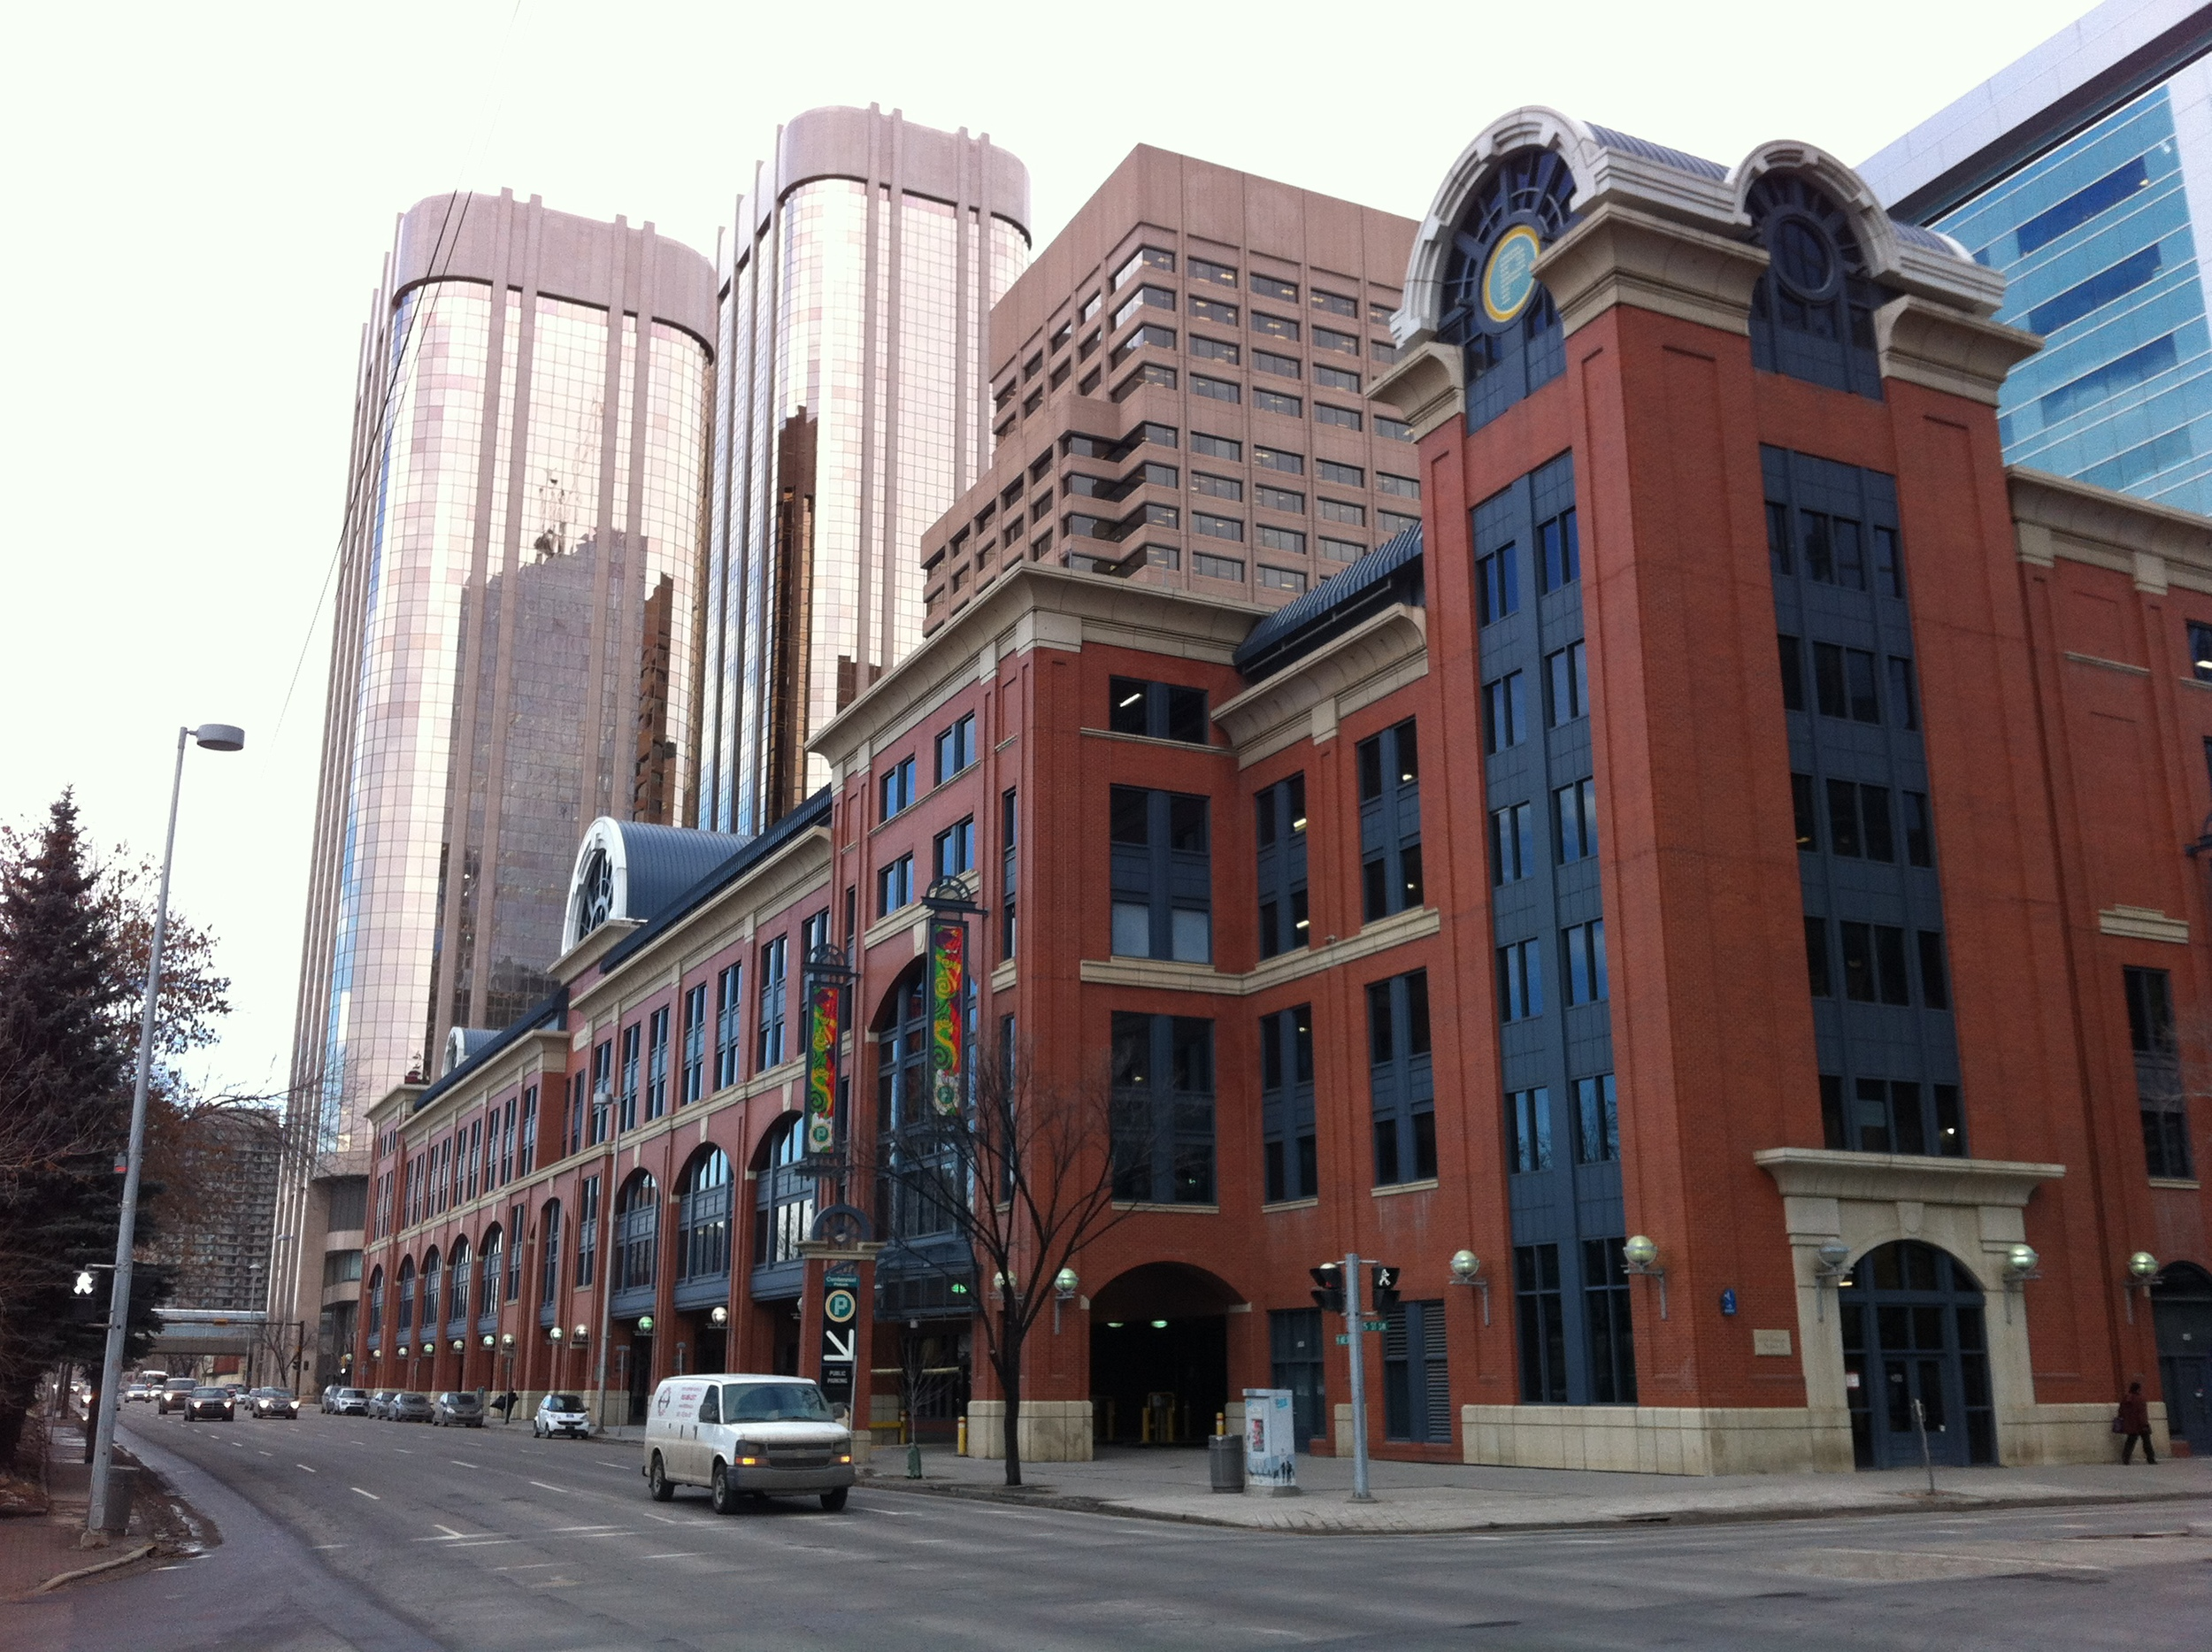 While Centennial Parkade is perhaps one of the more attractive parkades in North America, it has not been a catalyst for street life despite being designed with sidewalk retail spaces. The same can be said of most parkade blocks in our Downtown and those in other cities.